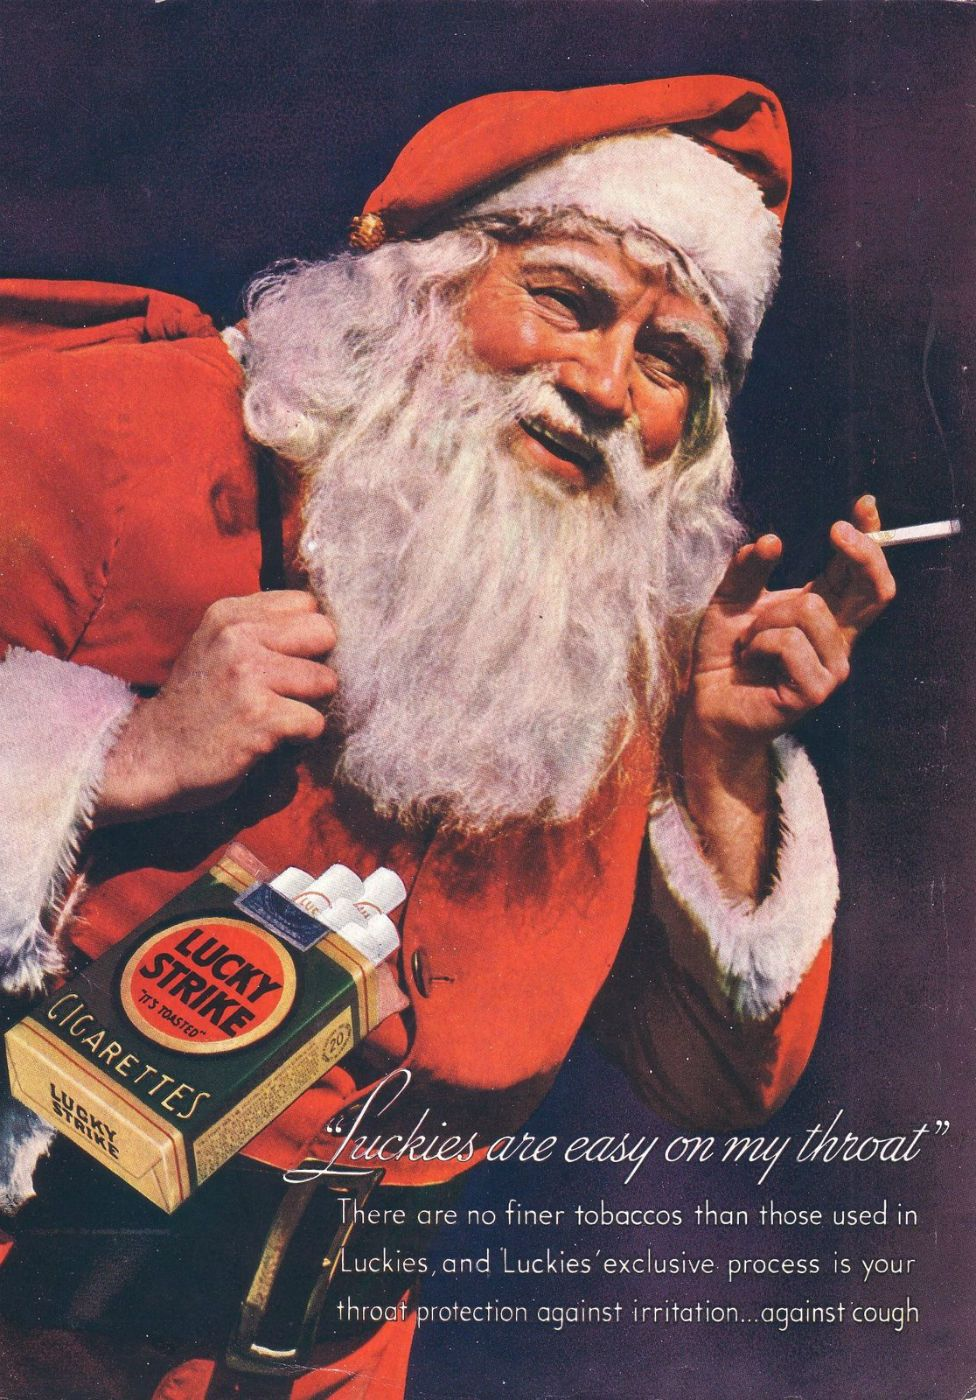 Advert for cigarettes